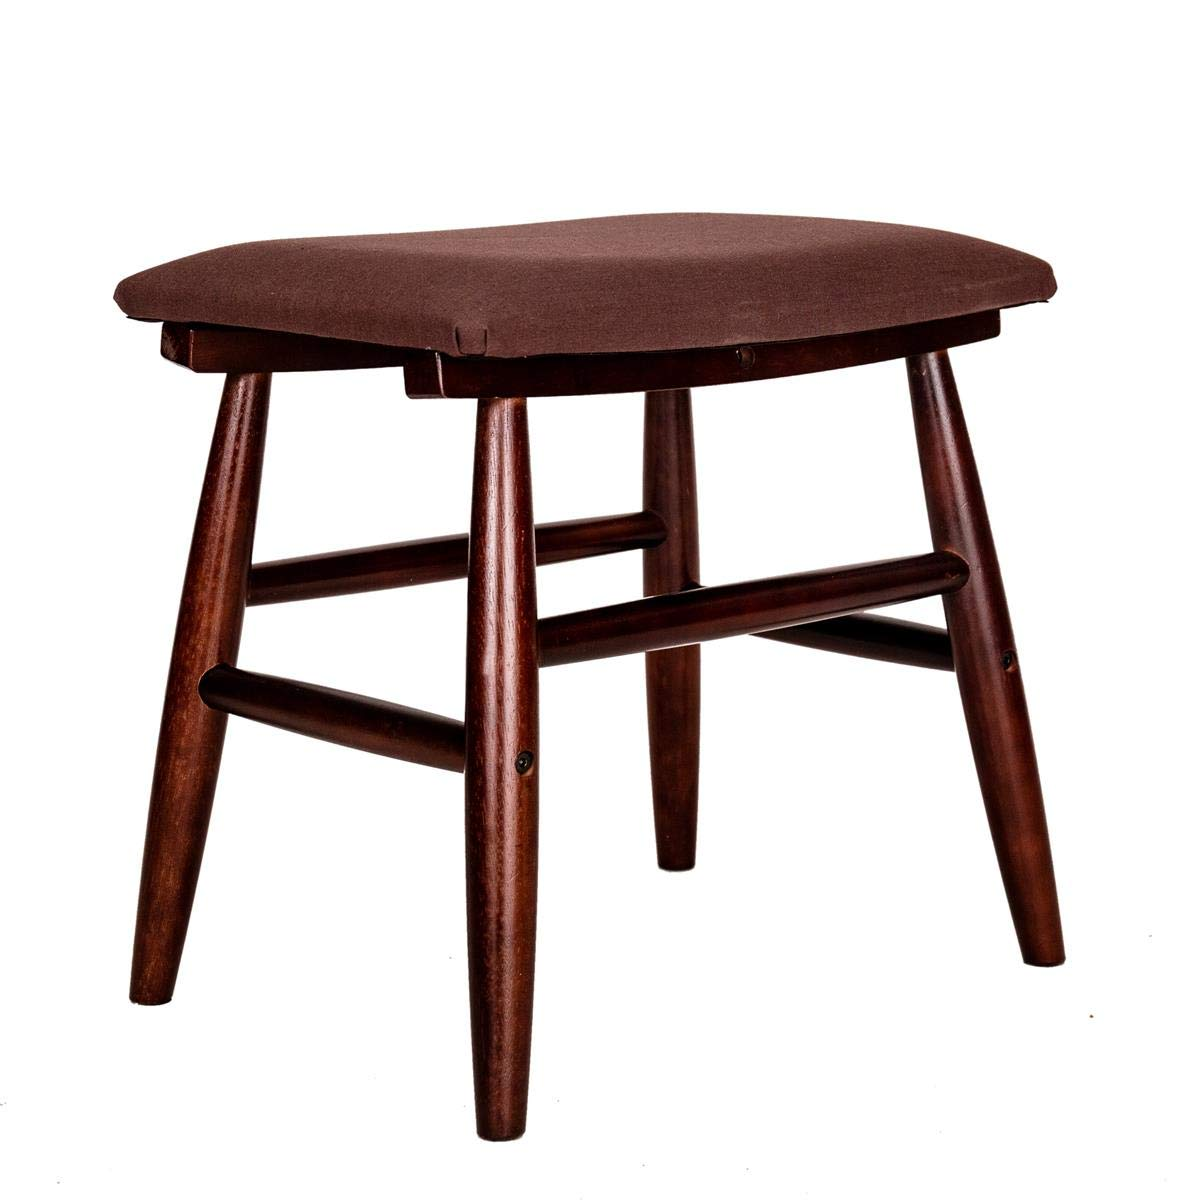 GRAFZEAL Vanity Stool, Rubberwood Legs Vanity Bench Makeup Dressing Stool Padded Shoe Bench Chair Piano Seat, Capacity 308lb, Easy Assembly, Rustic Brown HXD02Z by GRAFZEAL